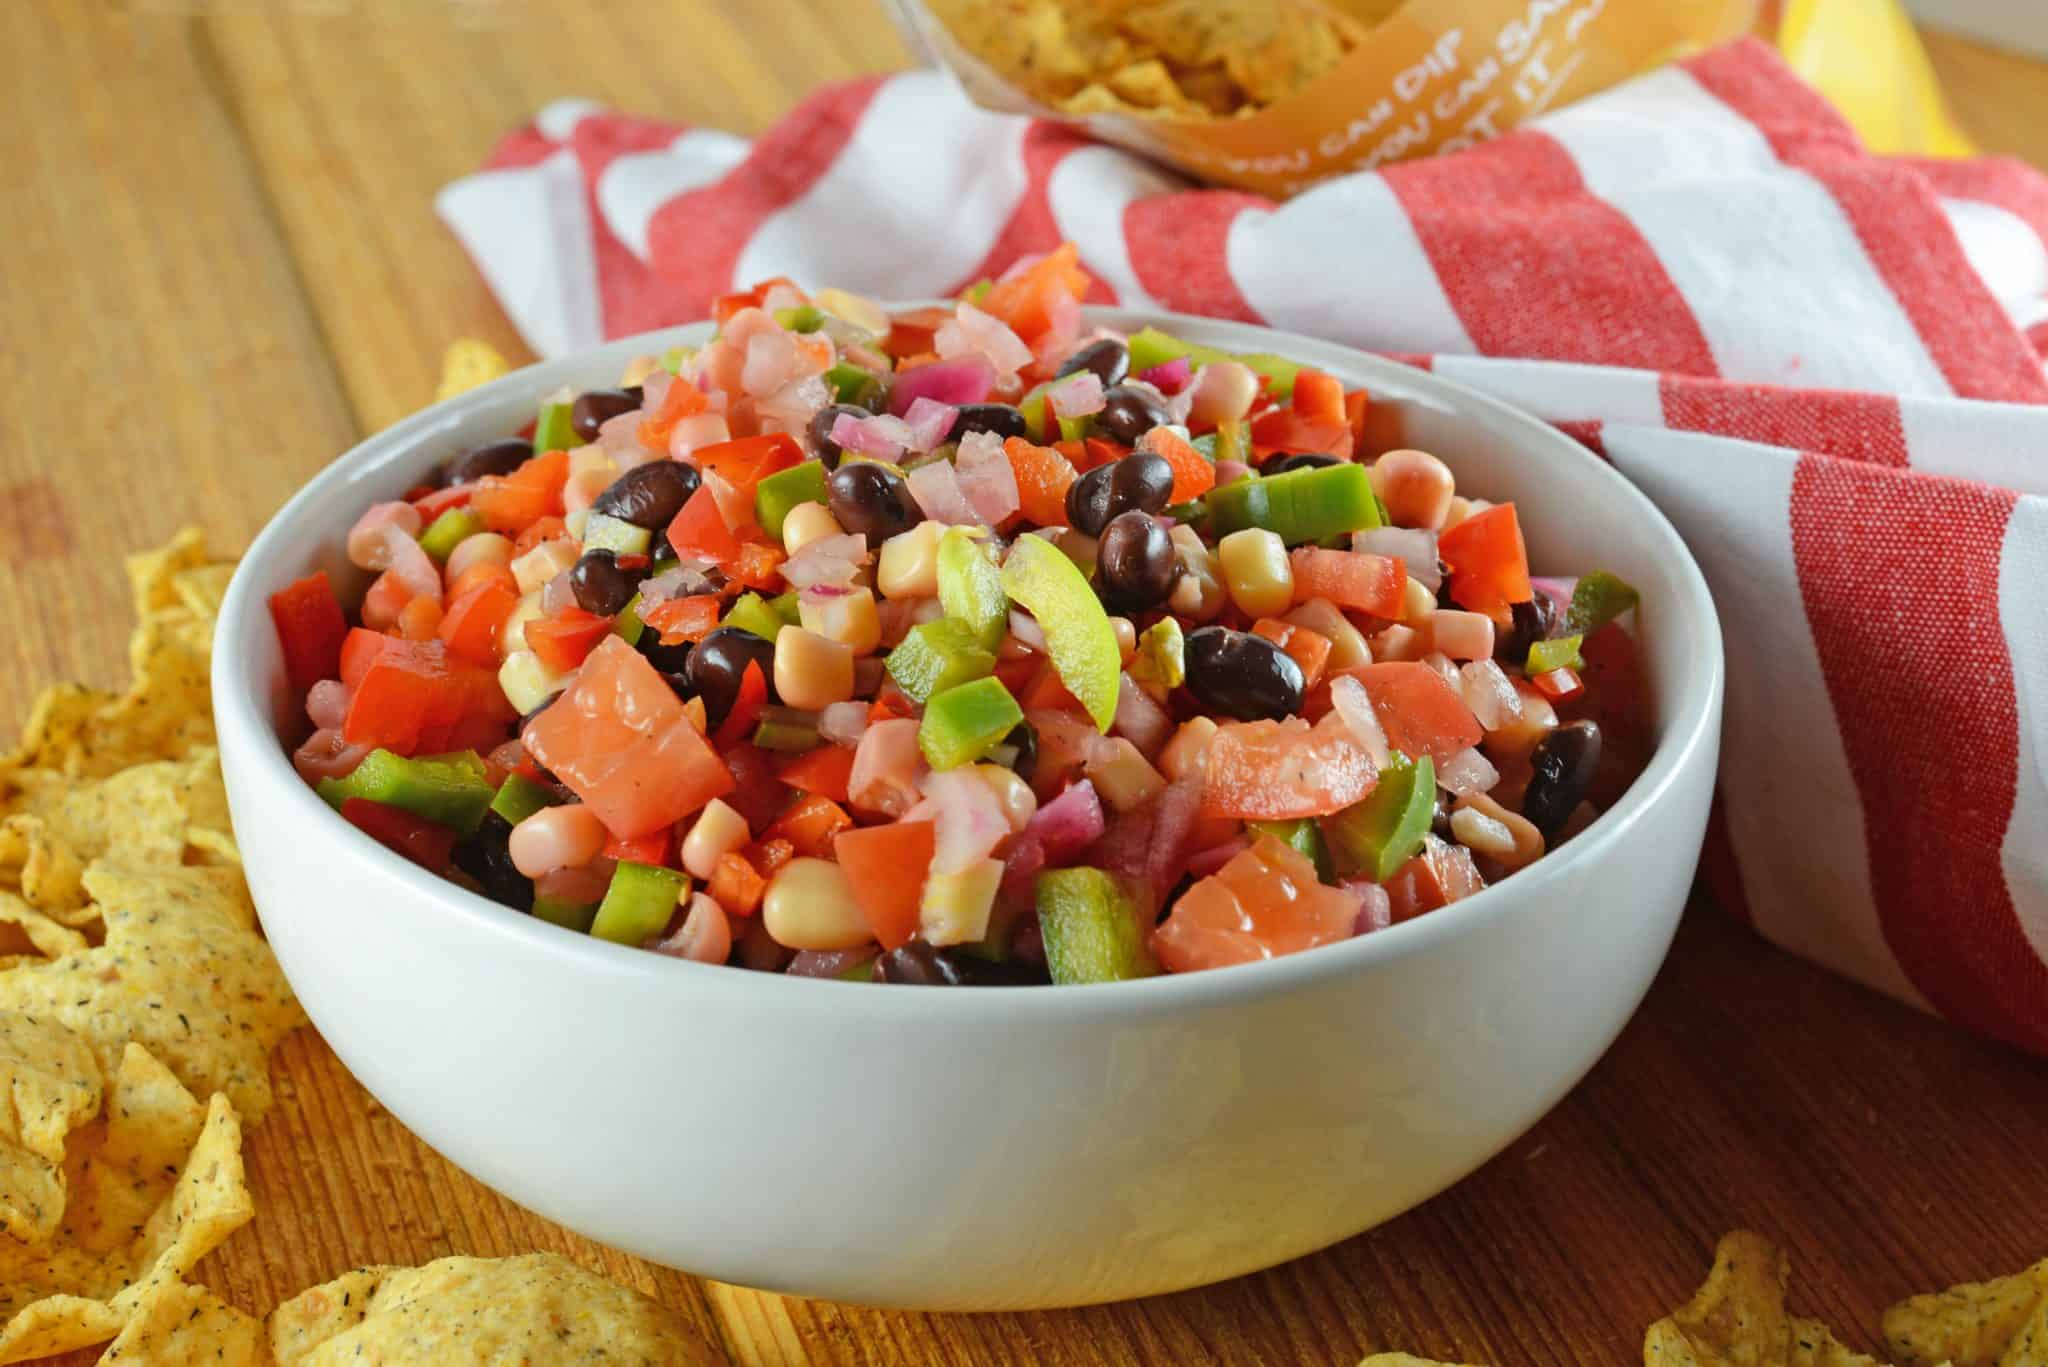 Cowboy Caviar Dip is my most popular recipe! This Texas caviar is made with fresh vegetables, black beans and a simple marinade! #cowboycaviar #texascaviar #bbqappetizer www.savoryexperiments.com